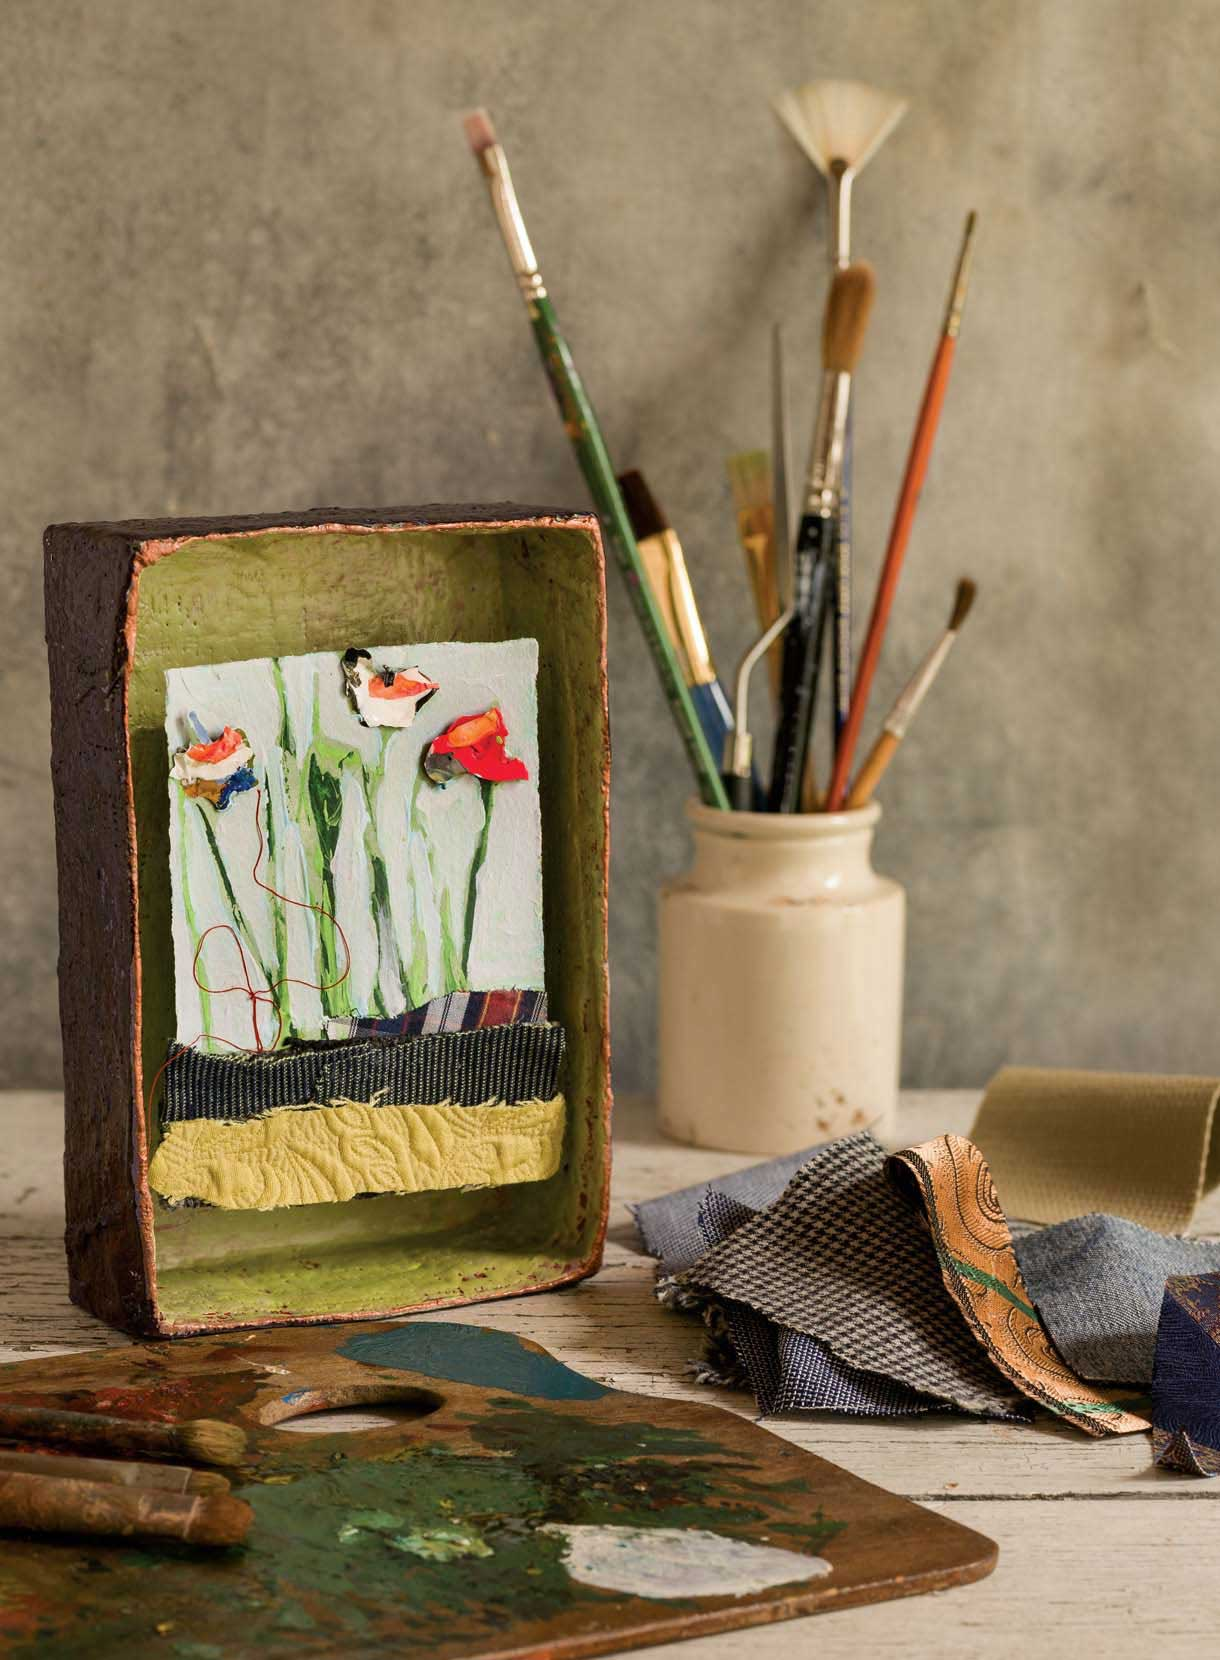 Staci Swider turns leftover paint skins into abstract flowers (Photos by Sharon White Photography)